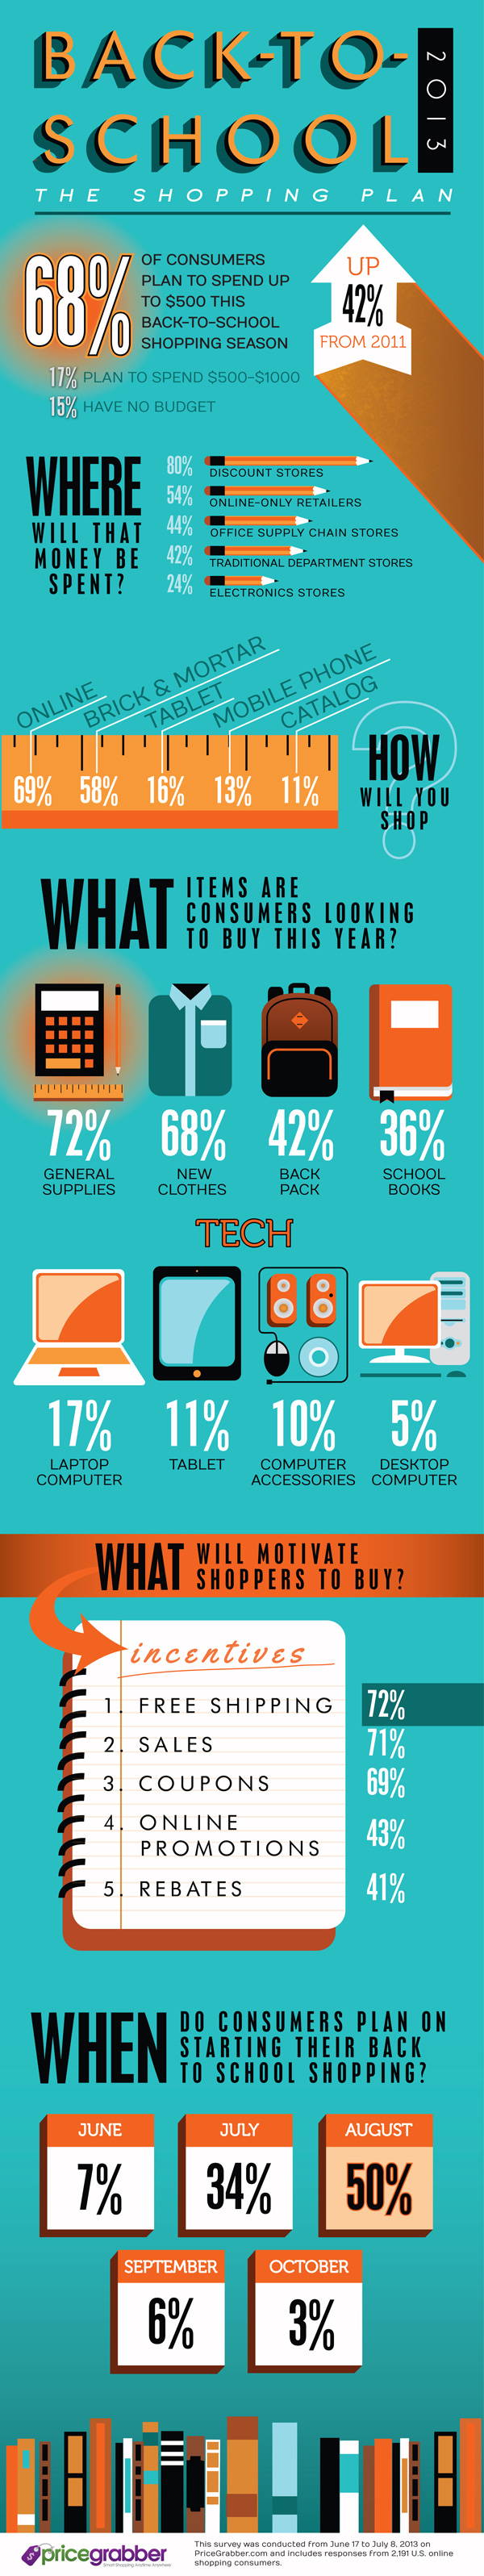 2013-back-to-school-trends-infographic